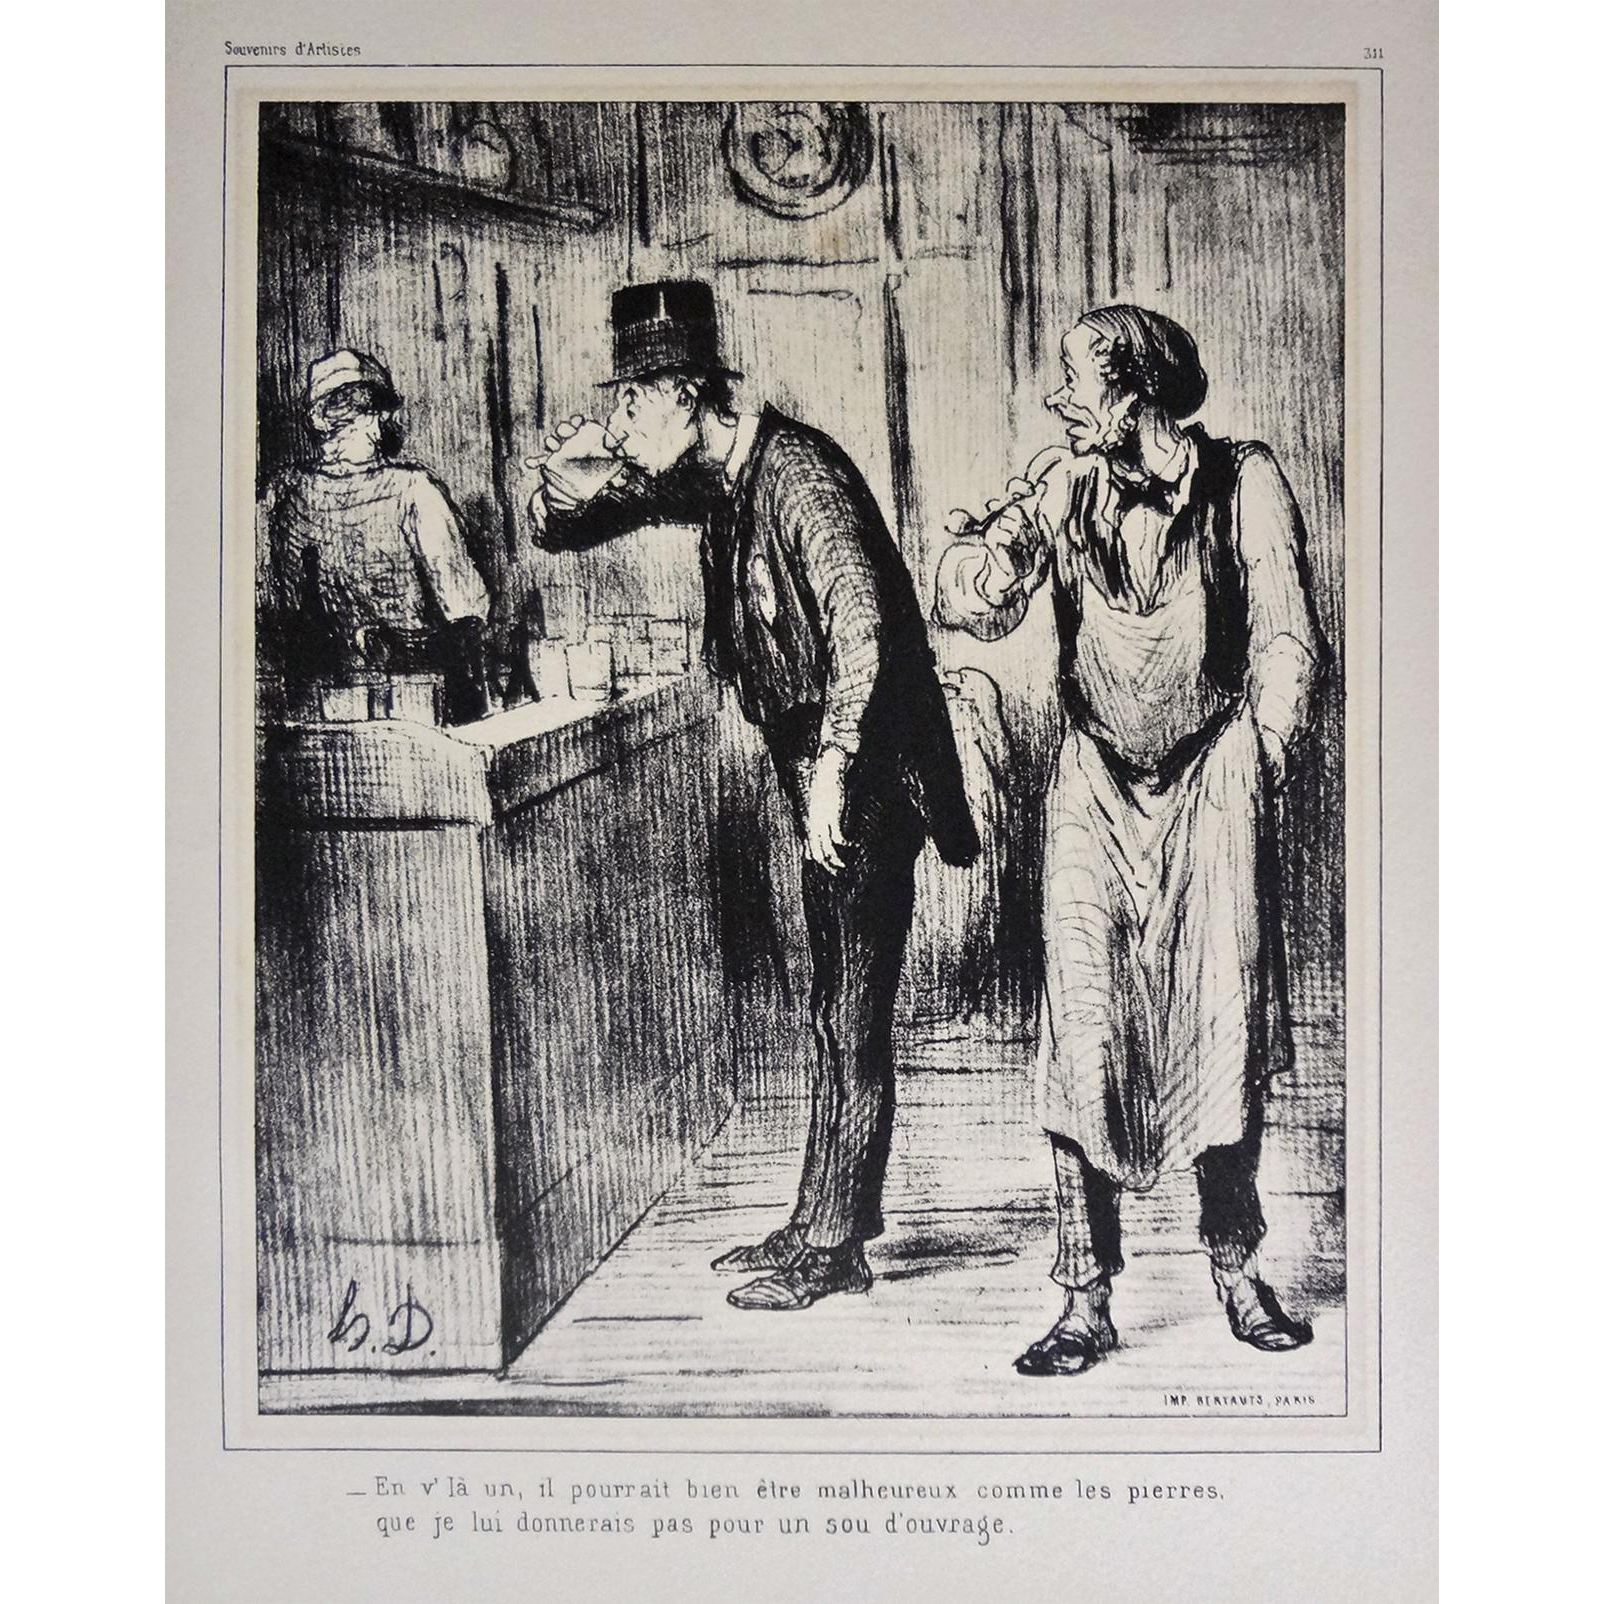 Honore Daumier Lithograph AMI DE PERSONNE with Authentication Caricature Satirical - 20th Century, France